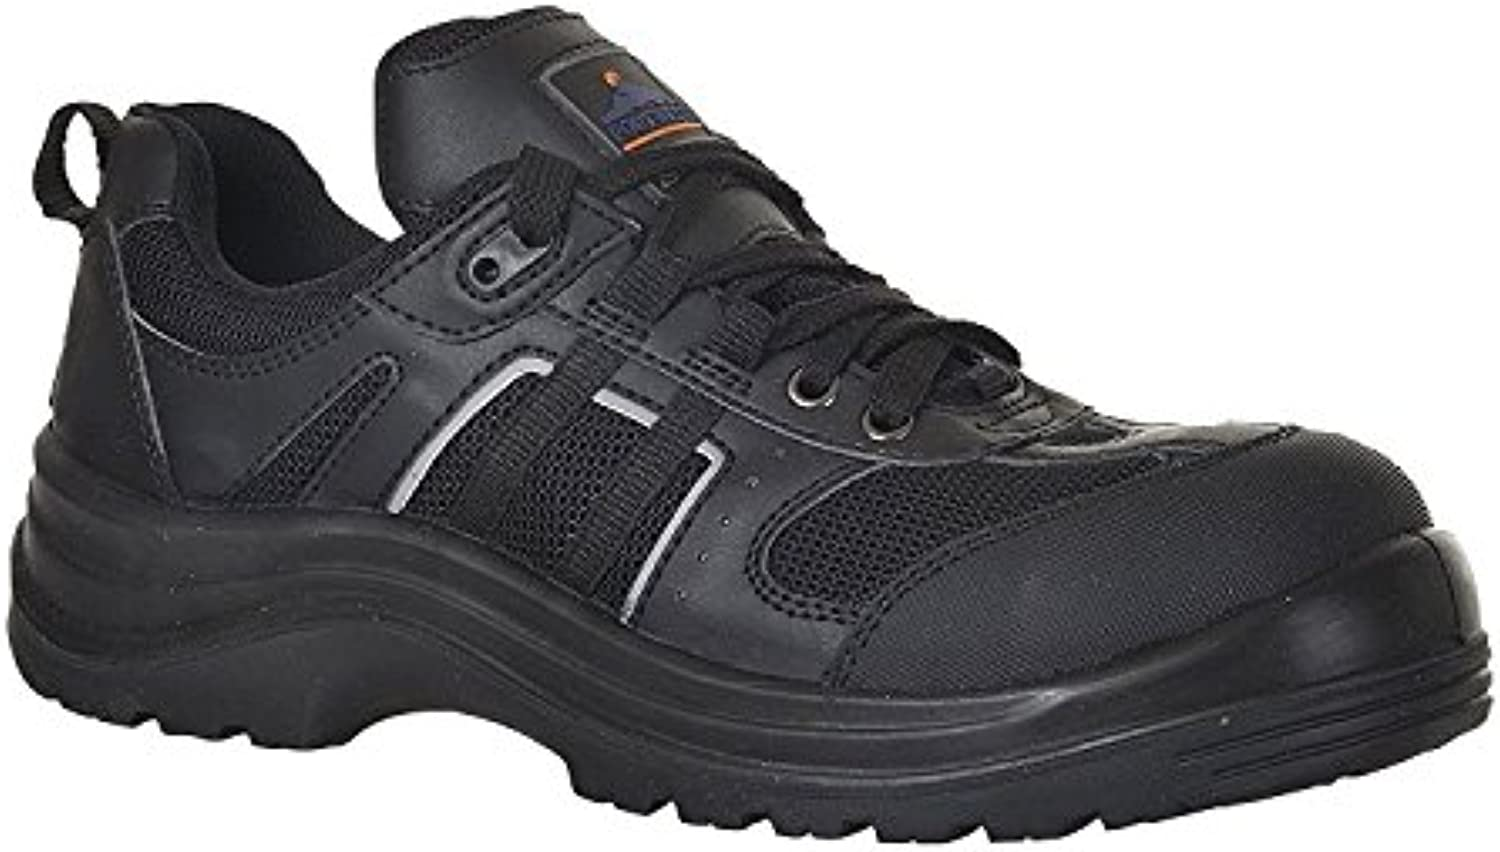 PORFW92BKR45   Seattle Anti Slip Safety Black   45 R   45 EU / 45 UK